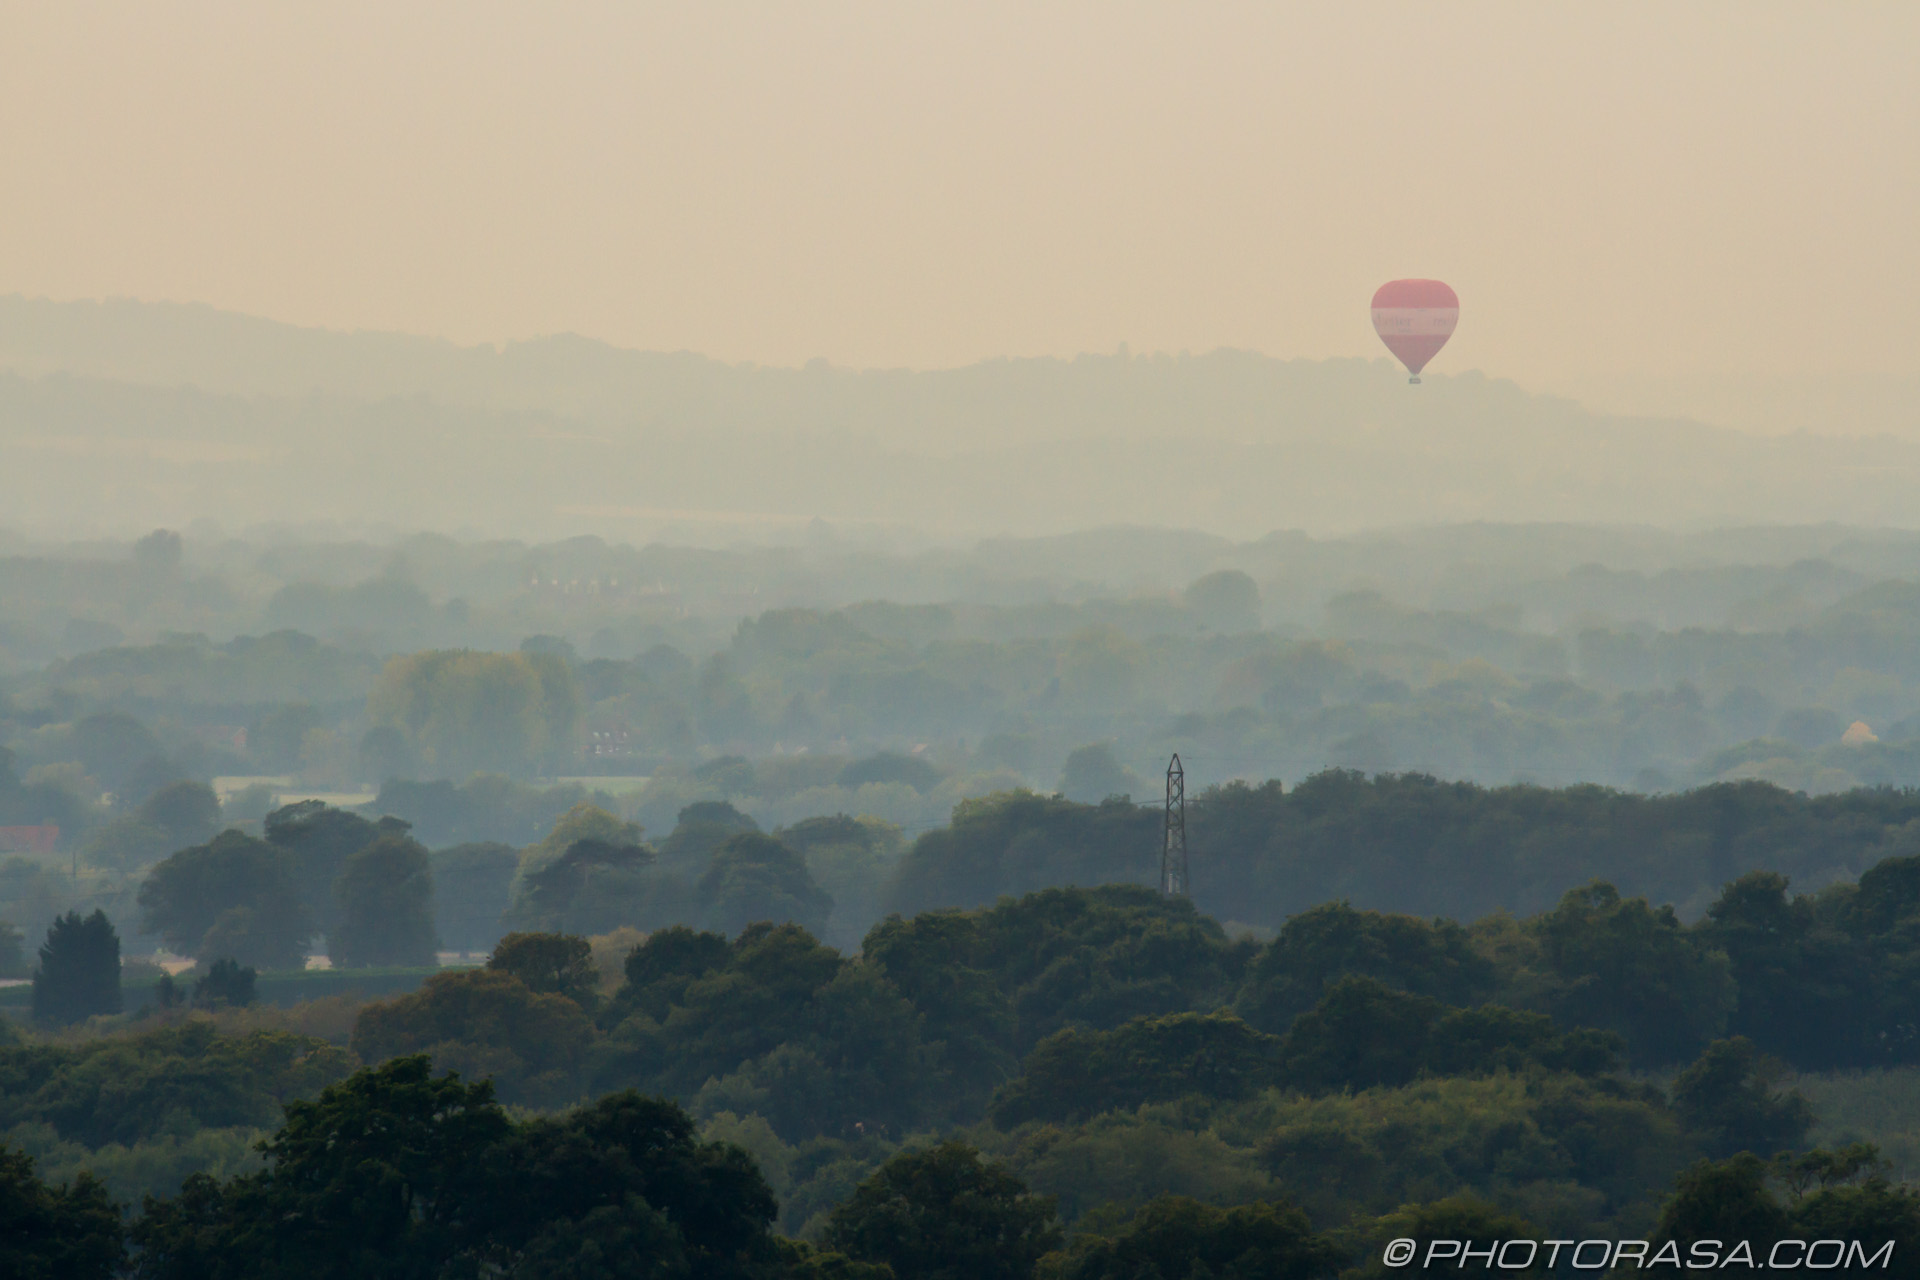 https://photorasa.com/balloons-evening-sky/red-air-balloon-over-misty-woodland/